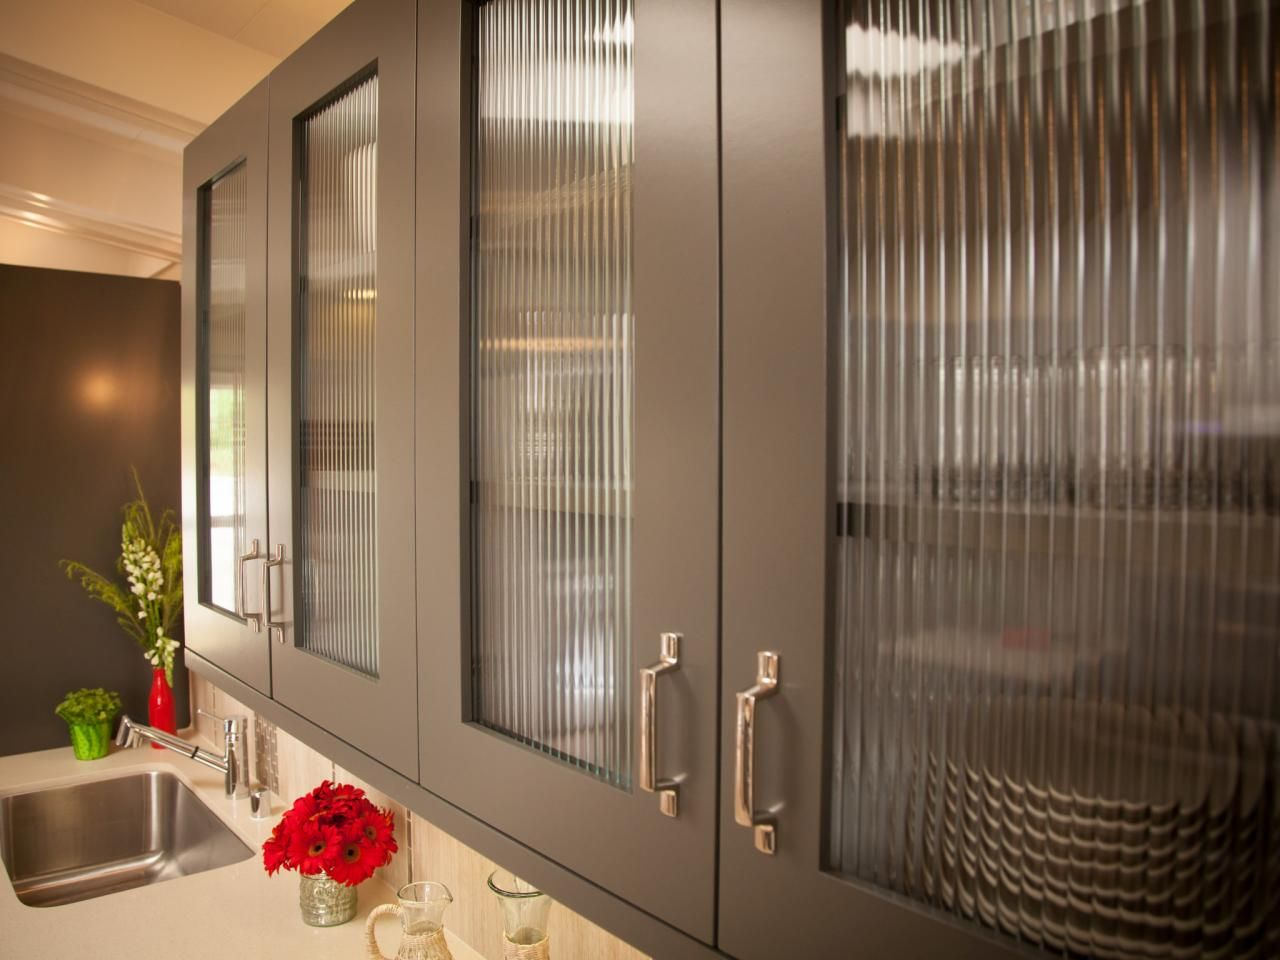 The Fluted Glass Really Makes These Cabinets A Focal Point Of The